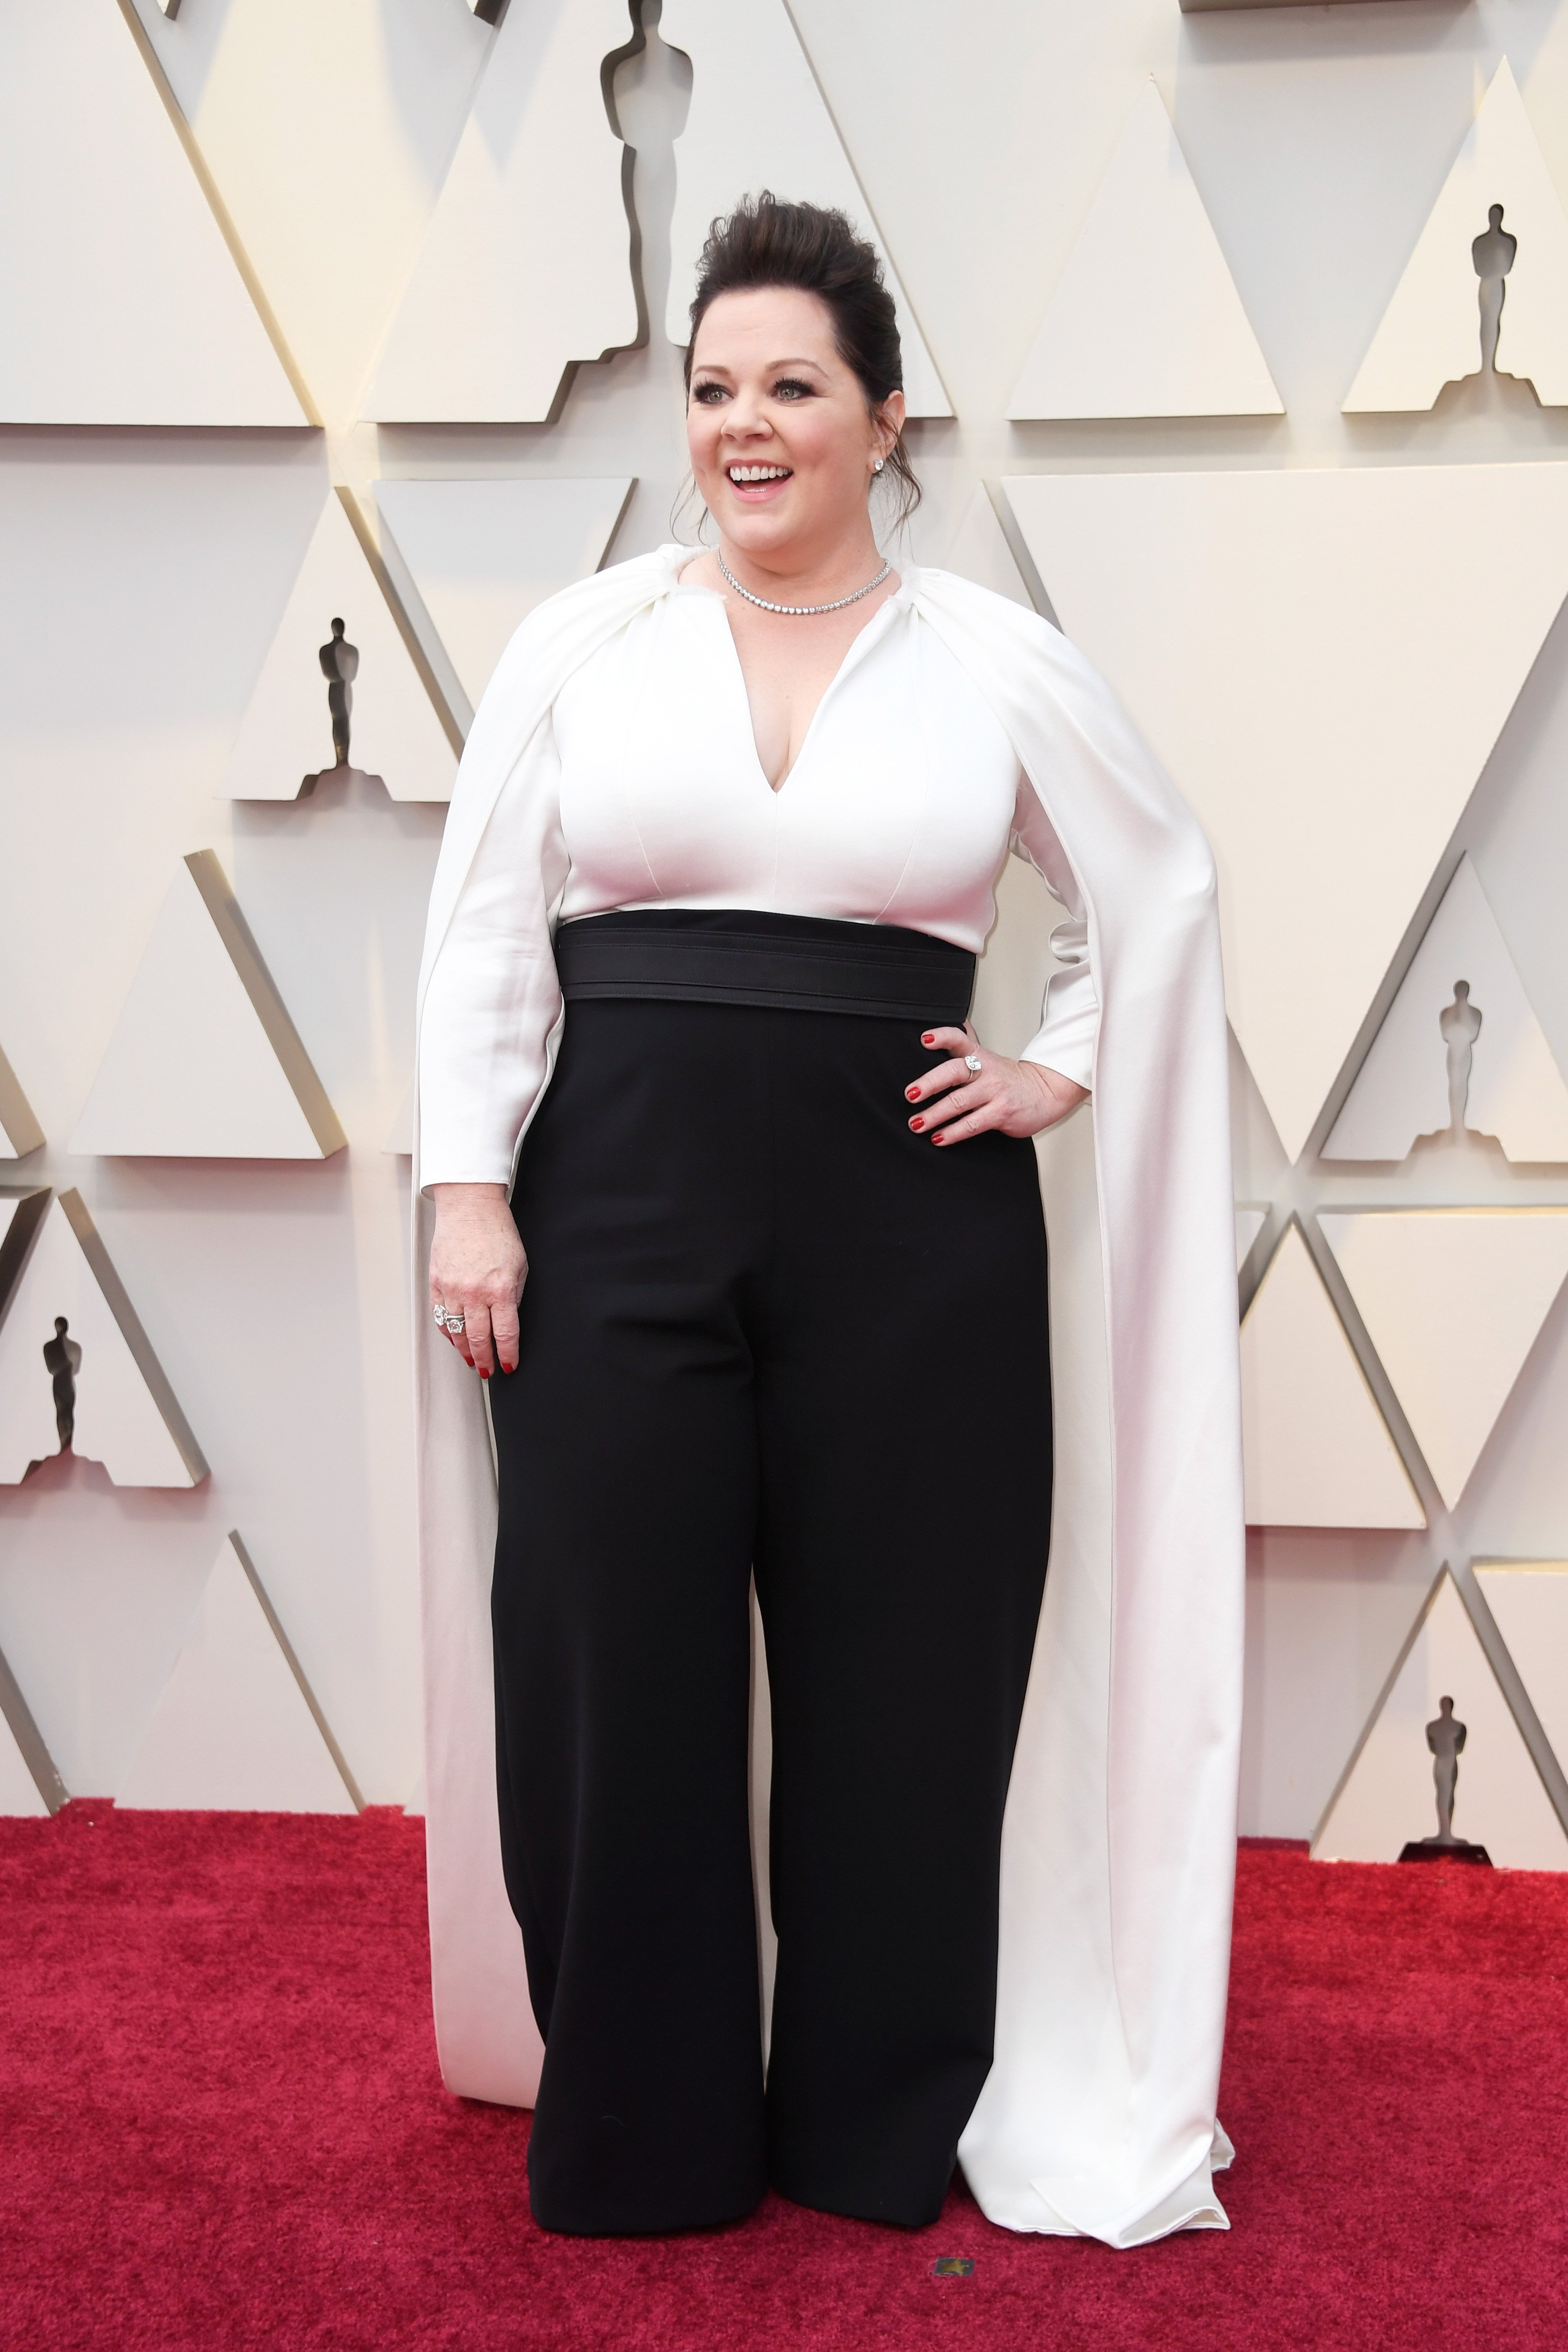 Melissa McCarthy at the 91st Annual Academy Awards | Photo: Getty Images